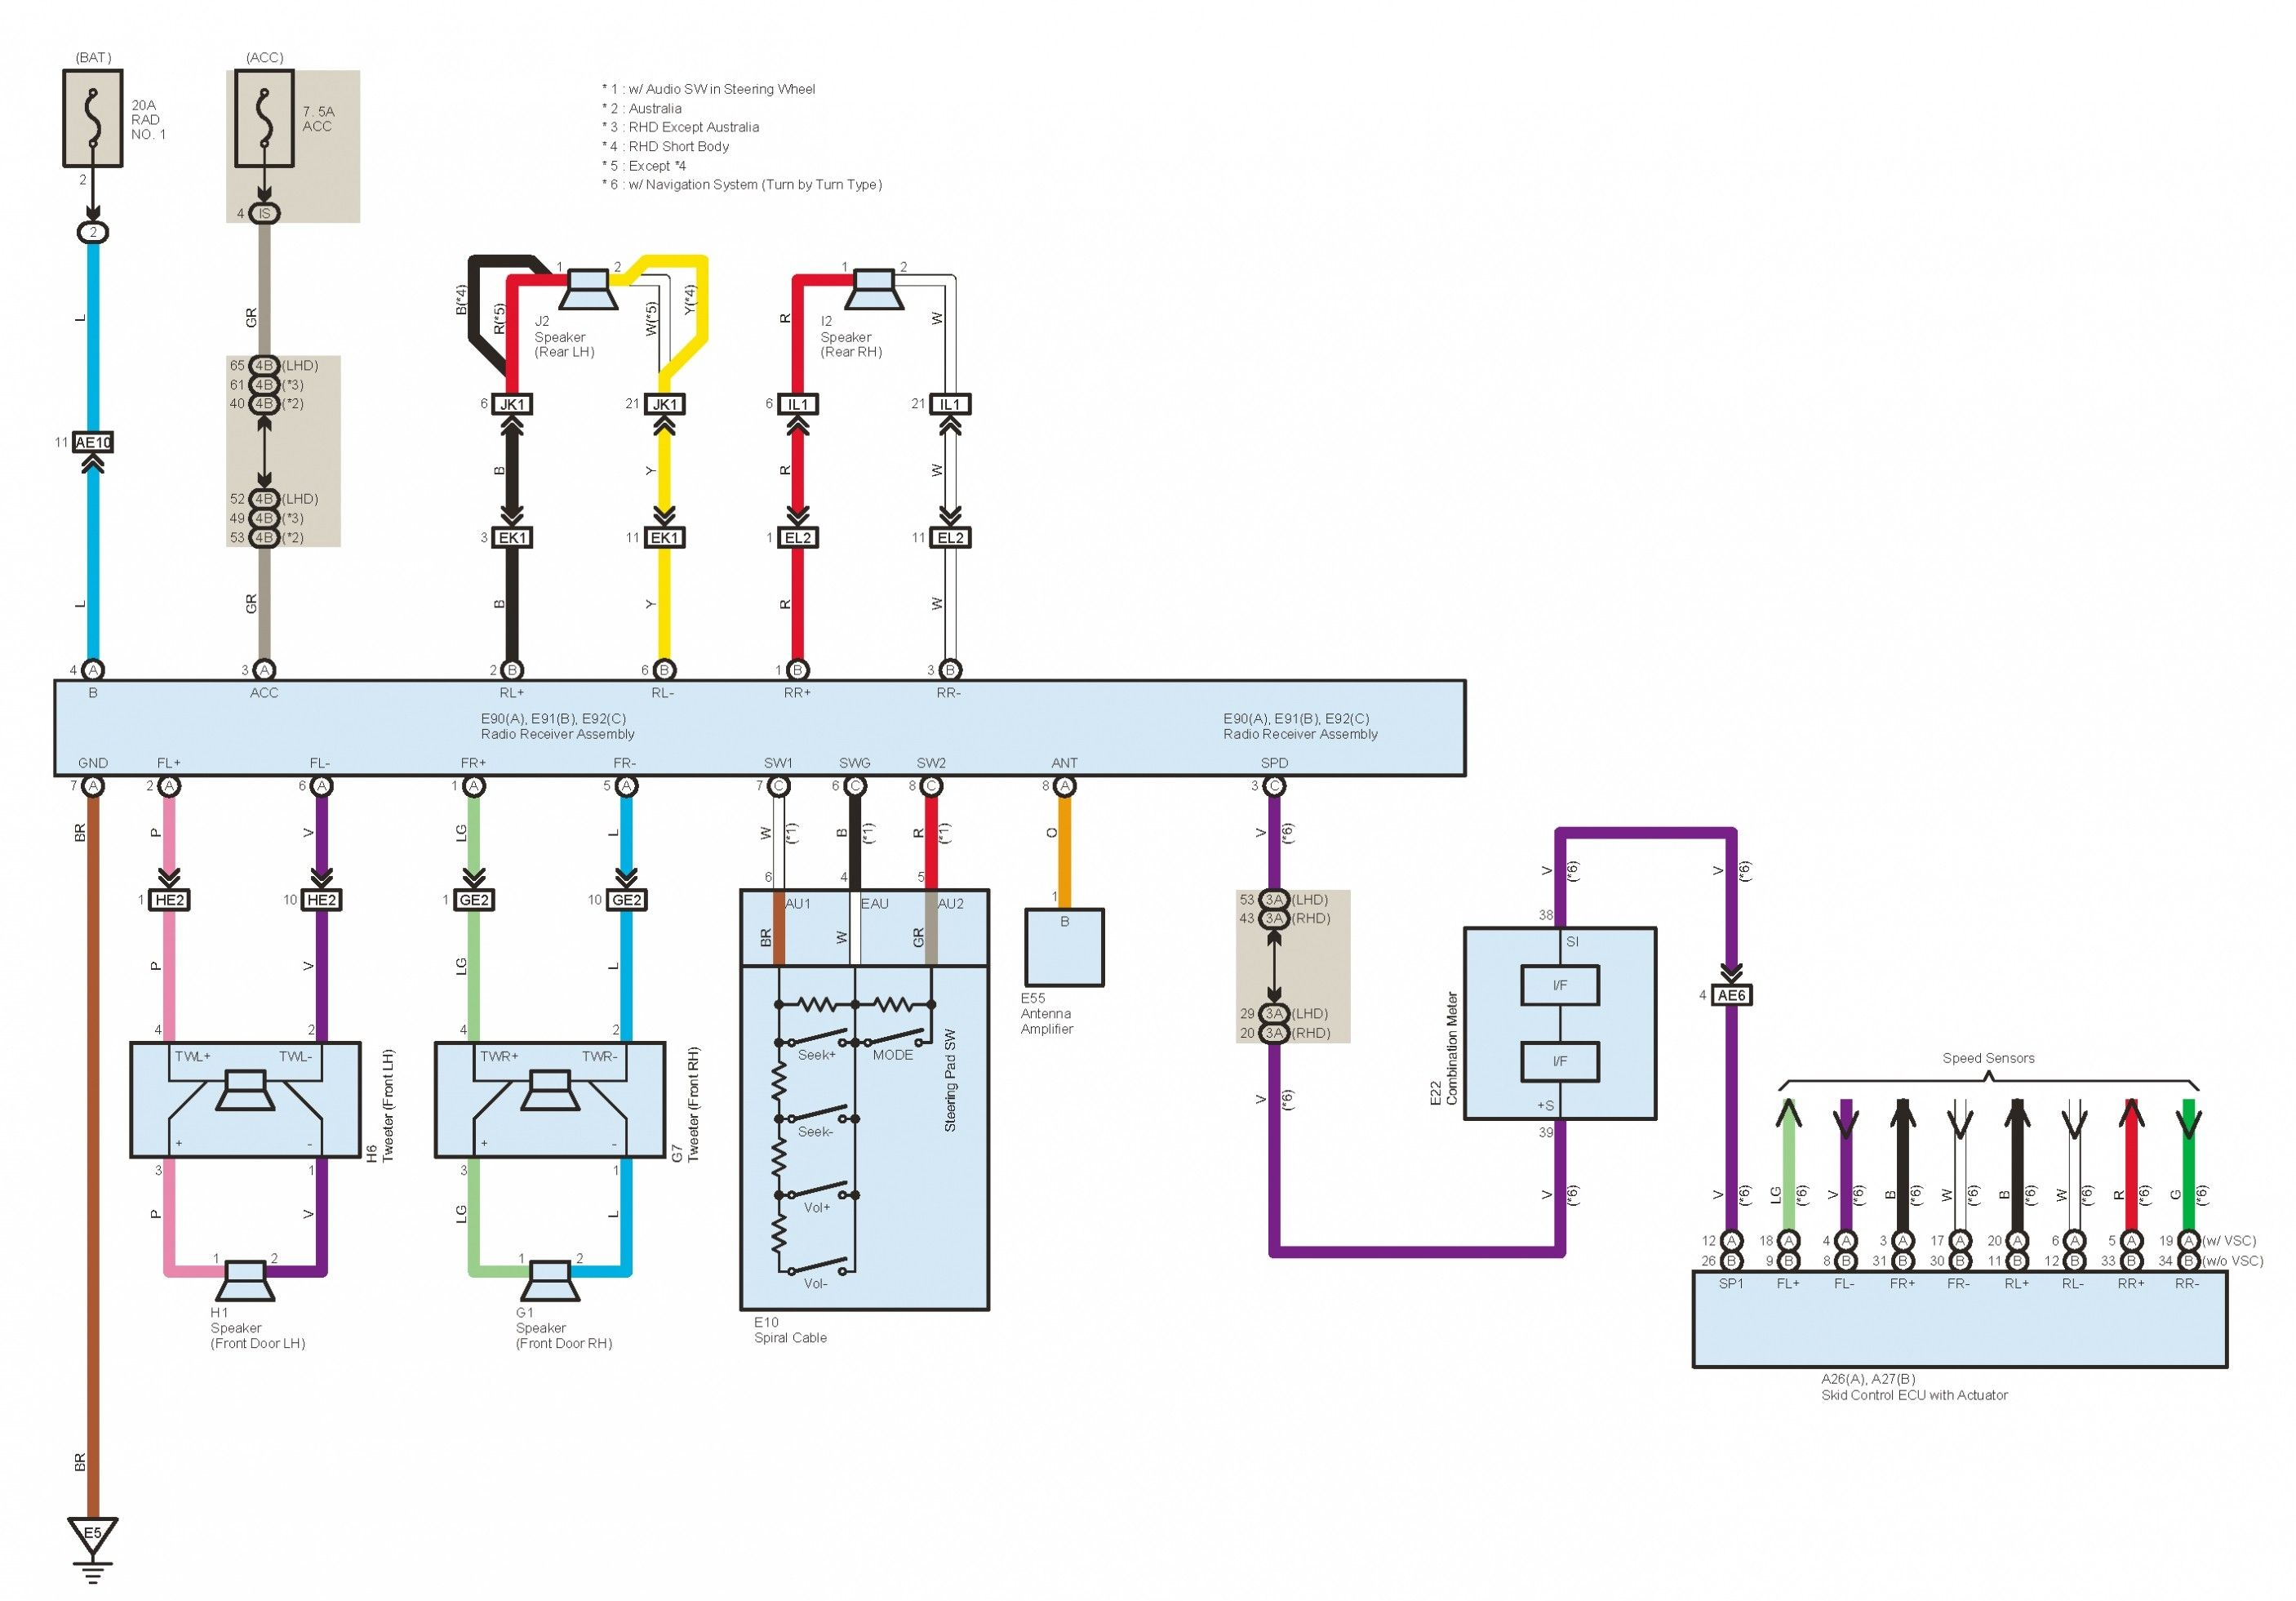 DIAGRAM] Garrett Ace 250 Wiring Diagram FULL Version HD Quality Wiring  Diagram - ATQR10FUSE27.LINEACERAMICAPARMA.ITlineaceramicaparma.it